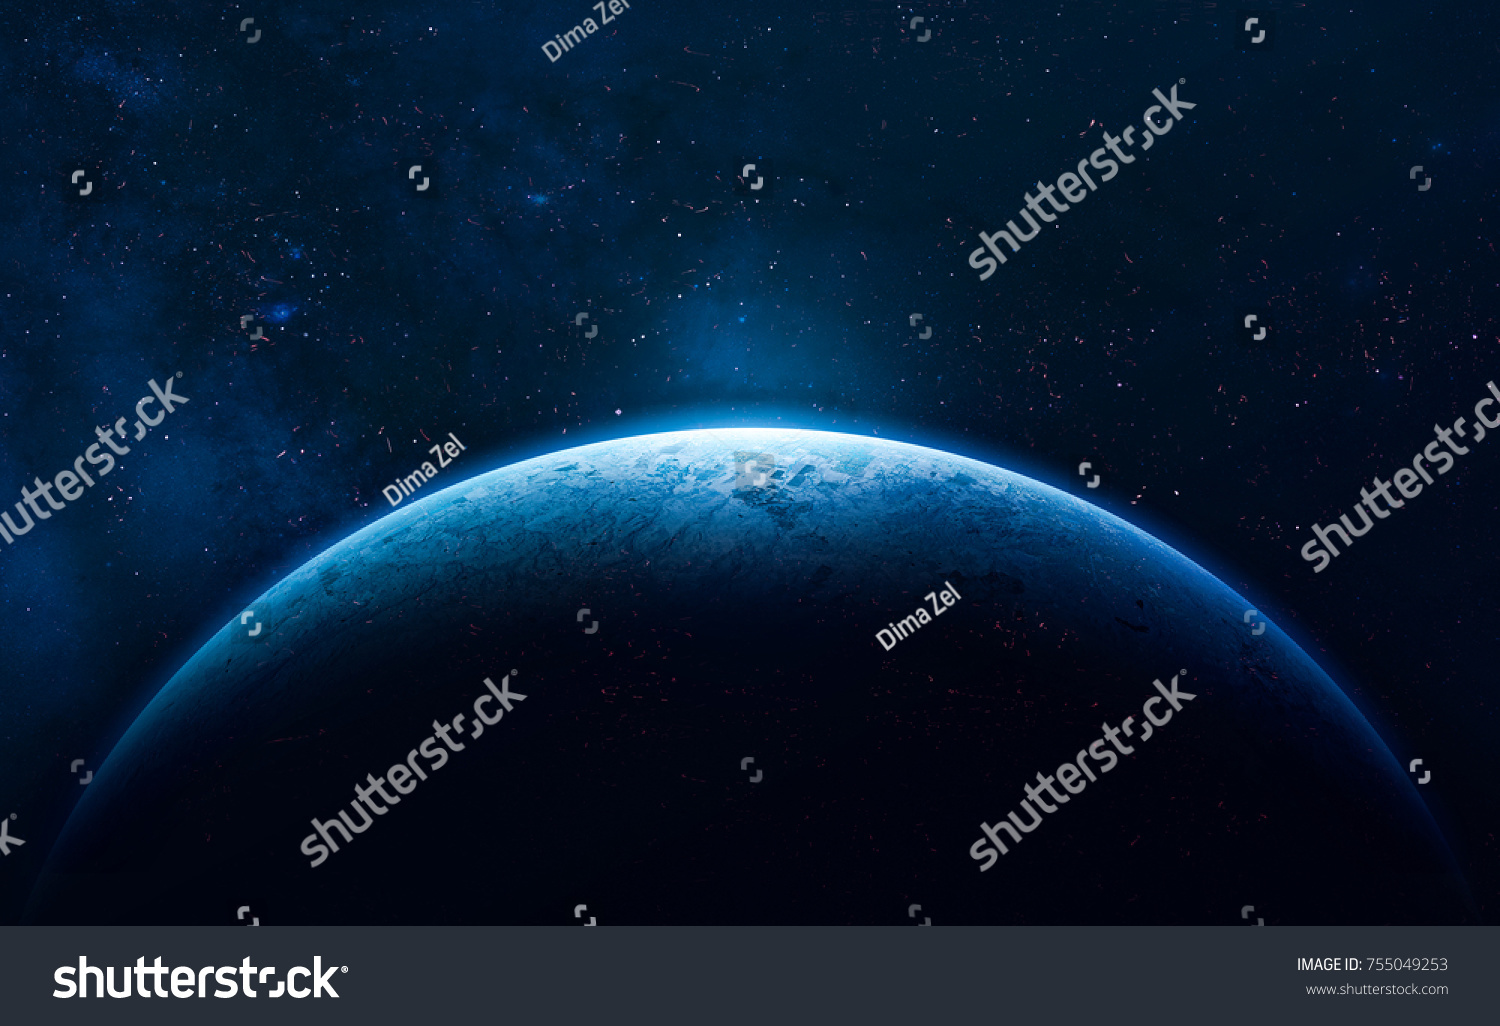 stock-photo-blue-earth-in-the-space-colorful-art-solar-system-blue-gradient-space-wallpaper-elements-of-755049253